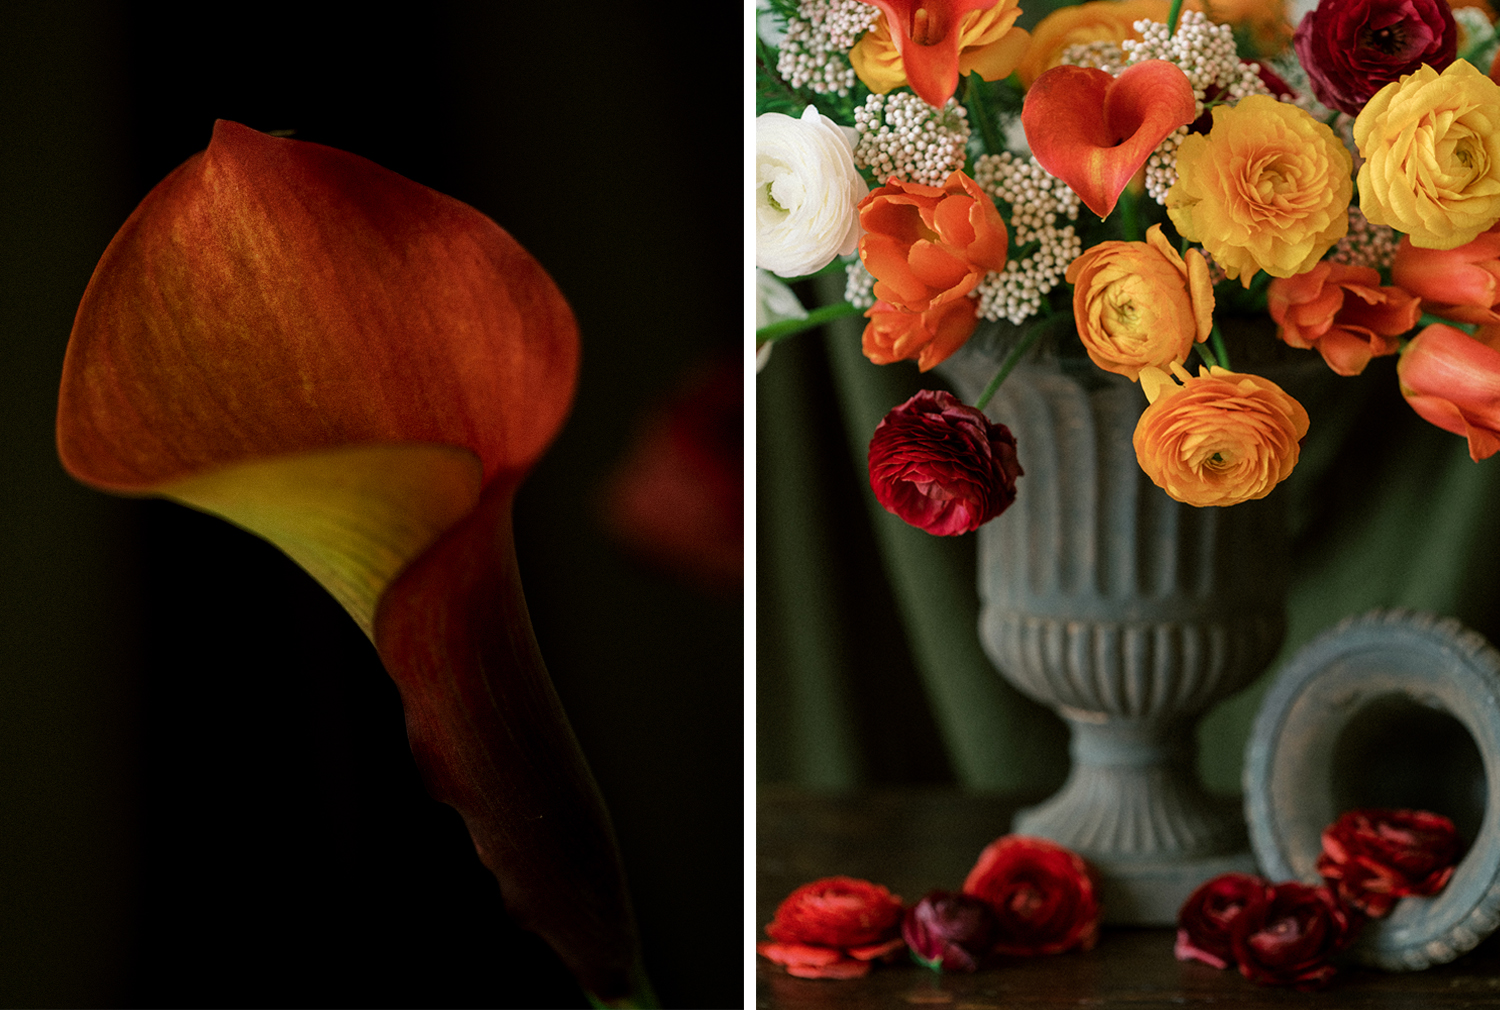 Playing around with garden urns and fresh colorful flowers